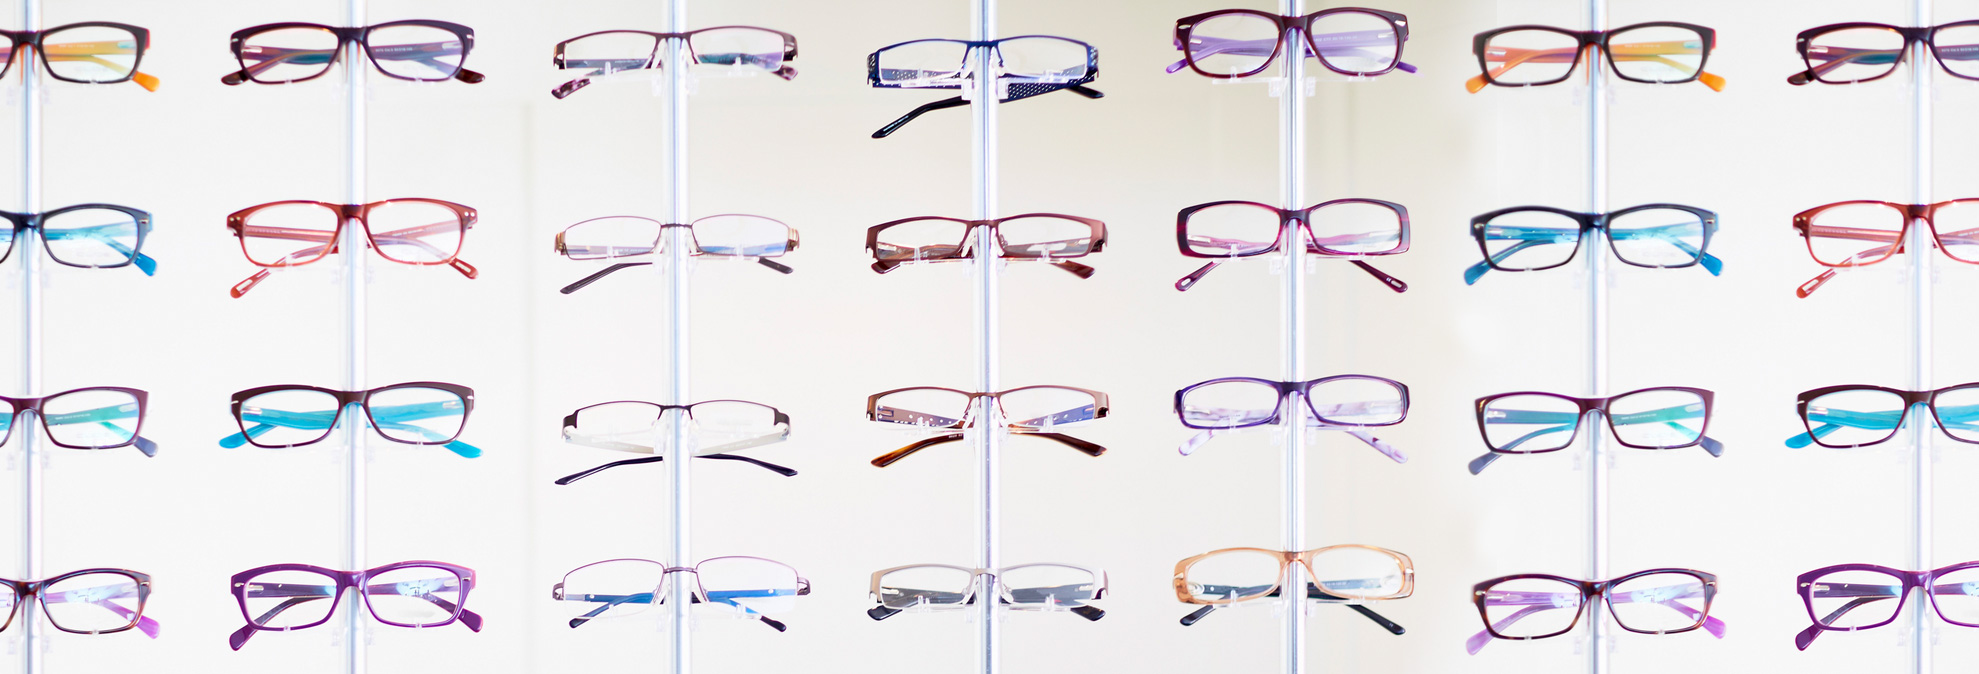 1c449918cb74 8 Great Ways to Save on the Cost of Eyeglasses - Consumer Reports